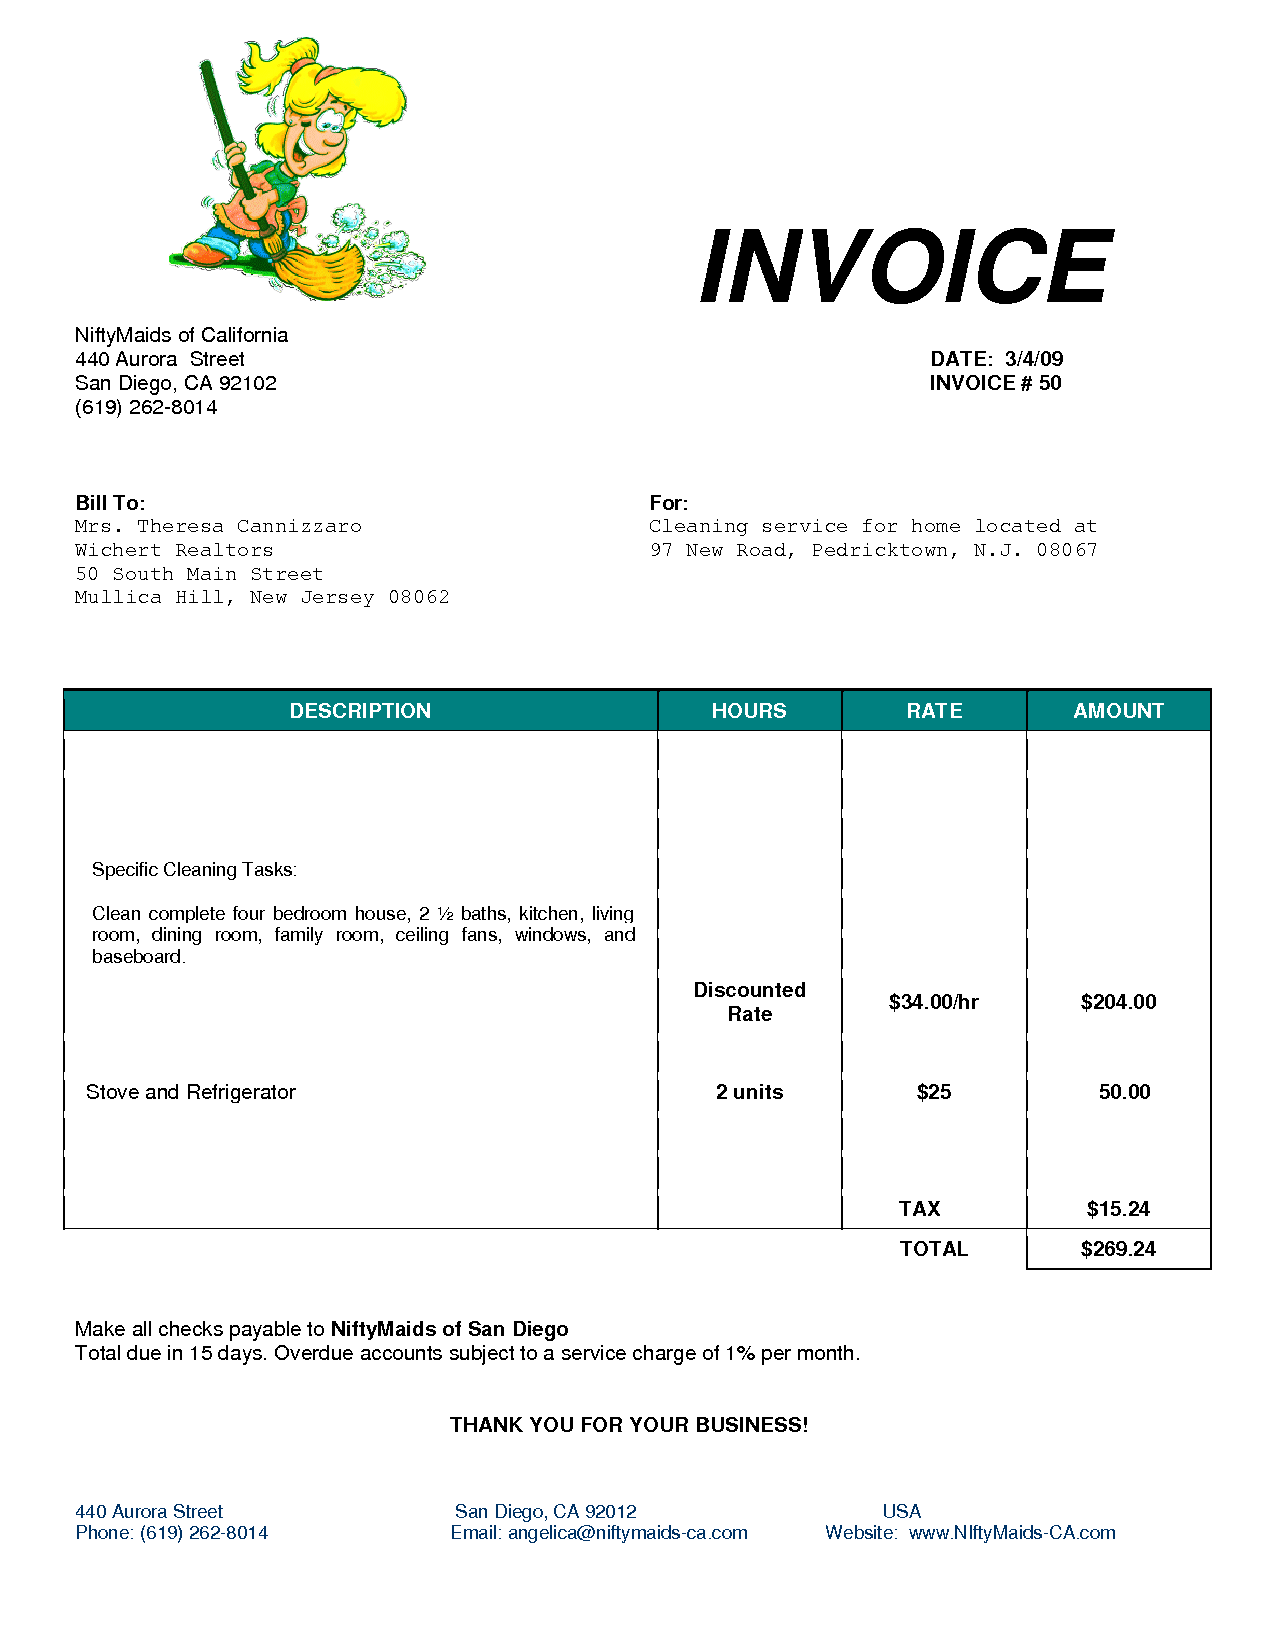 Post Office Receipt Excel Cleaning Bill Invoice  Services Invoice  Ideas For The House  Sample Of Receipts Template Pdf with Chocolate Cake Receipt Cleaning Bill Invoice  Services Invoice Free Contractor Invoice Pdf